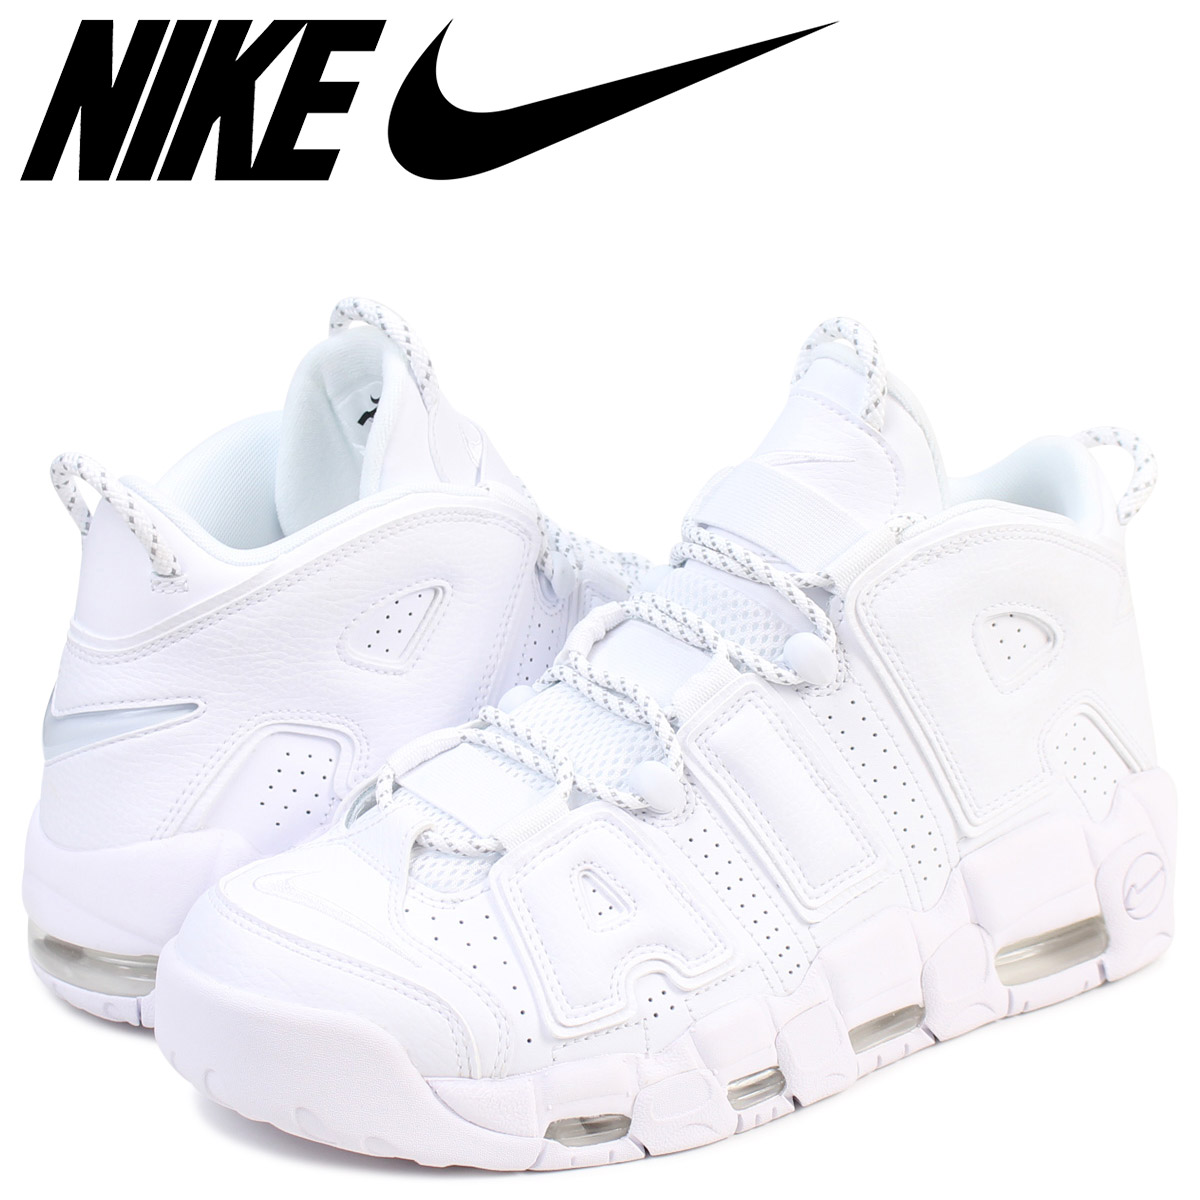 Nike NIKE up tempo sneakers AIR MORE UPTEMPO 96 921,948-100 men's shoes  white